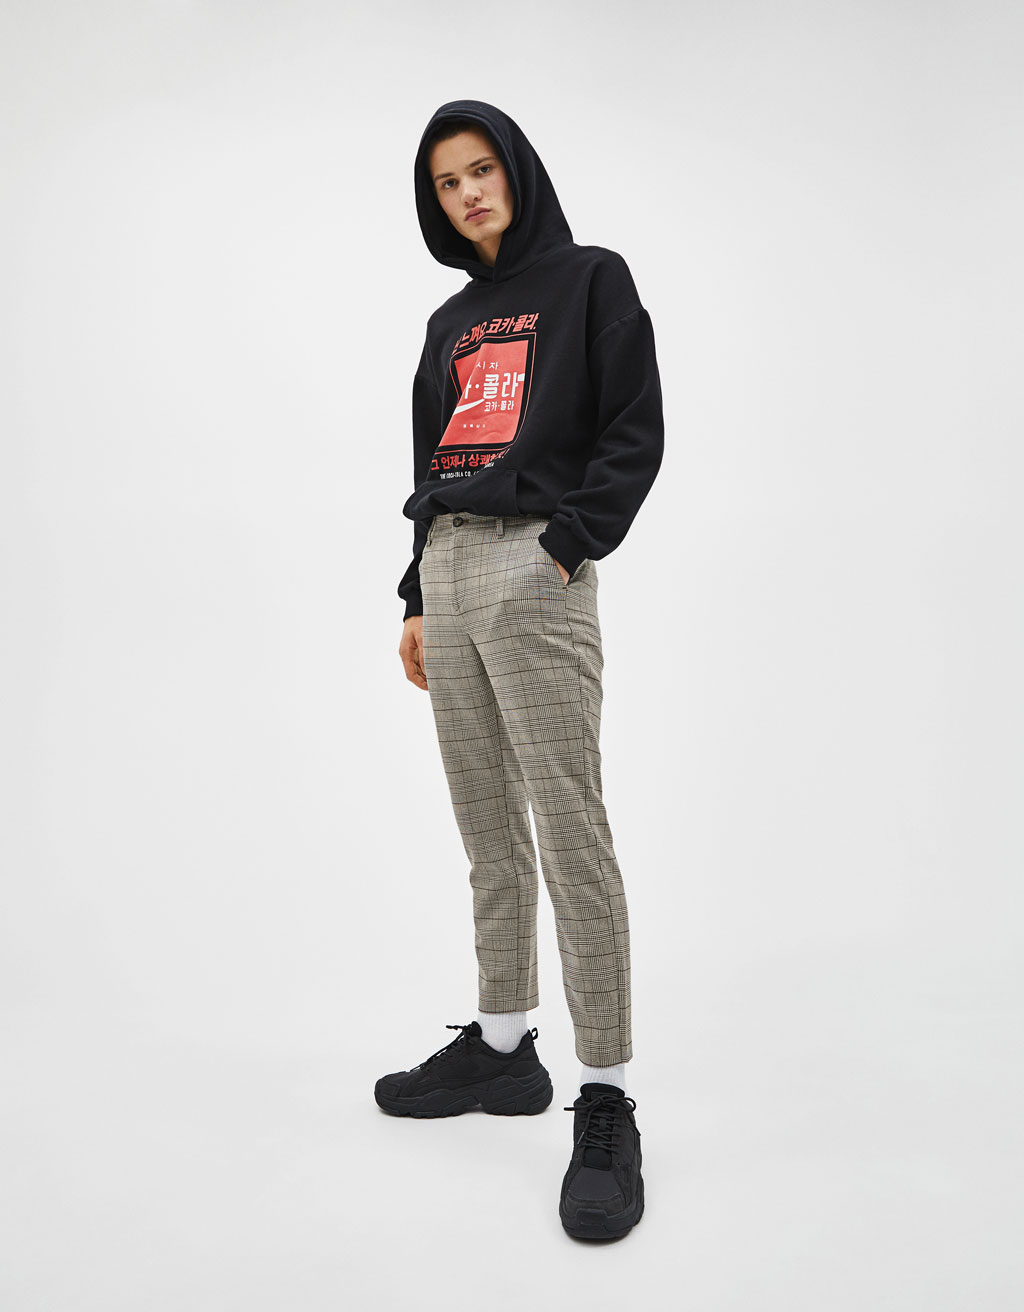 c2440fad5bd7 Men s Sweatshirts   Hoodies - Autumn Winter 2018   Bershka